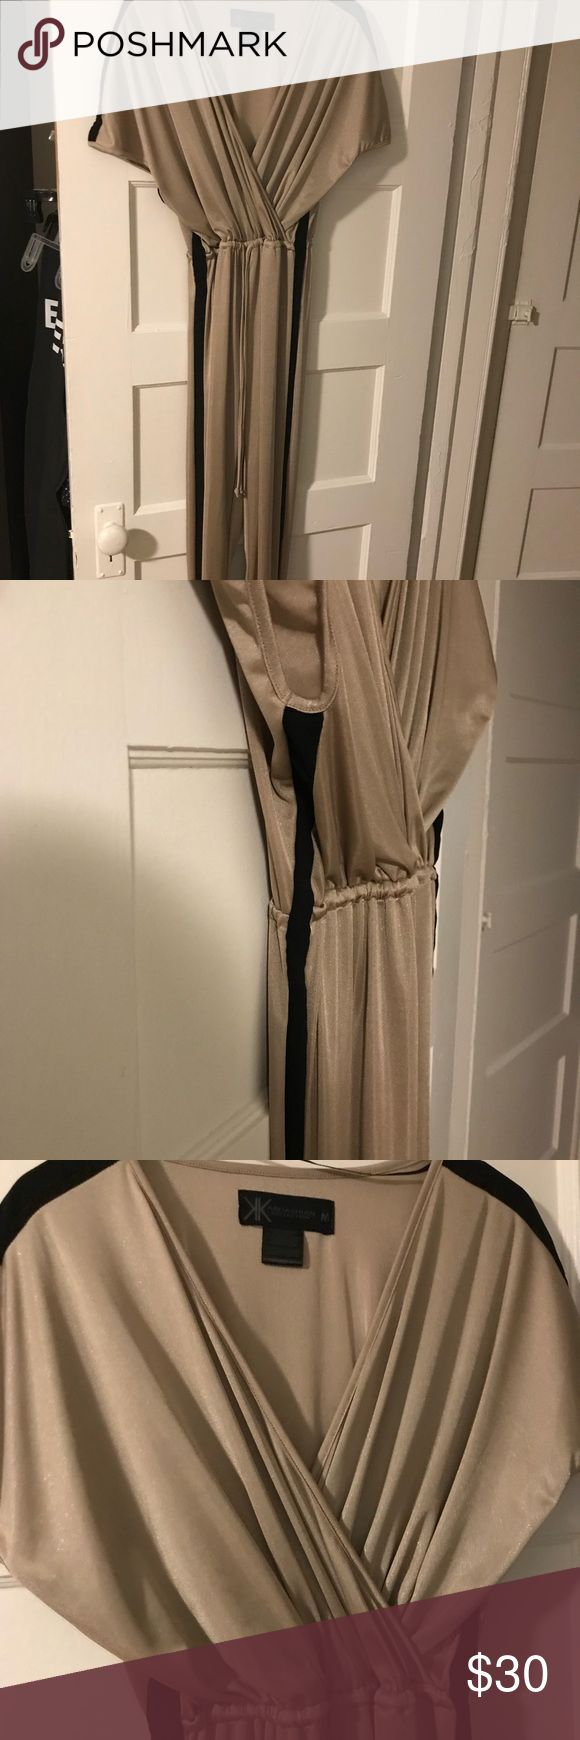 Kardashian Kollection Metallic Jumpsuit Metallic jumpsuit, worn once. Perfect outfit for a night out. Can be dressed up with heels or flats. Size M Kardashian Kollection Pants Jumpsuits & Rompers